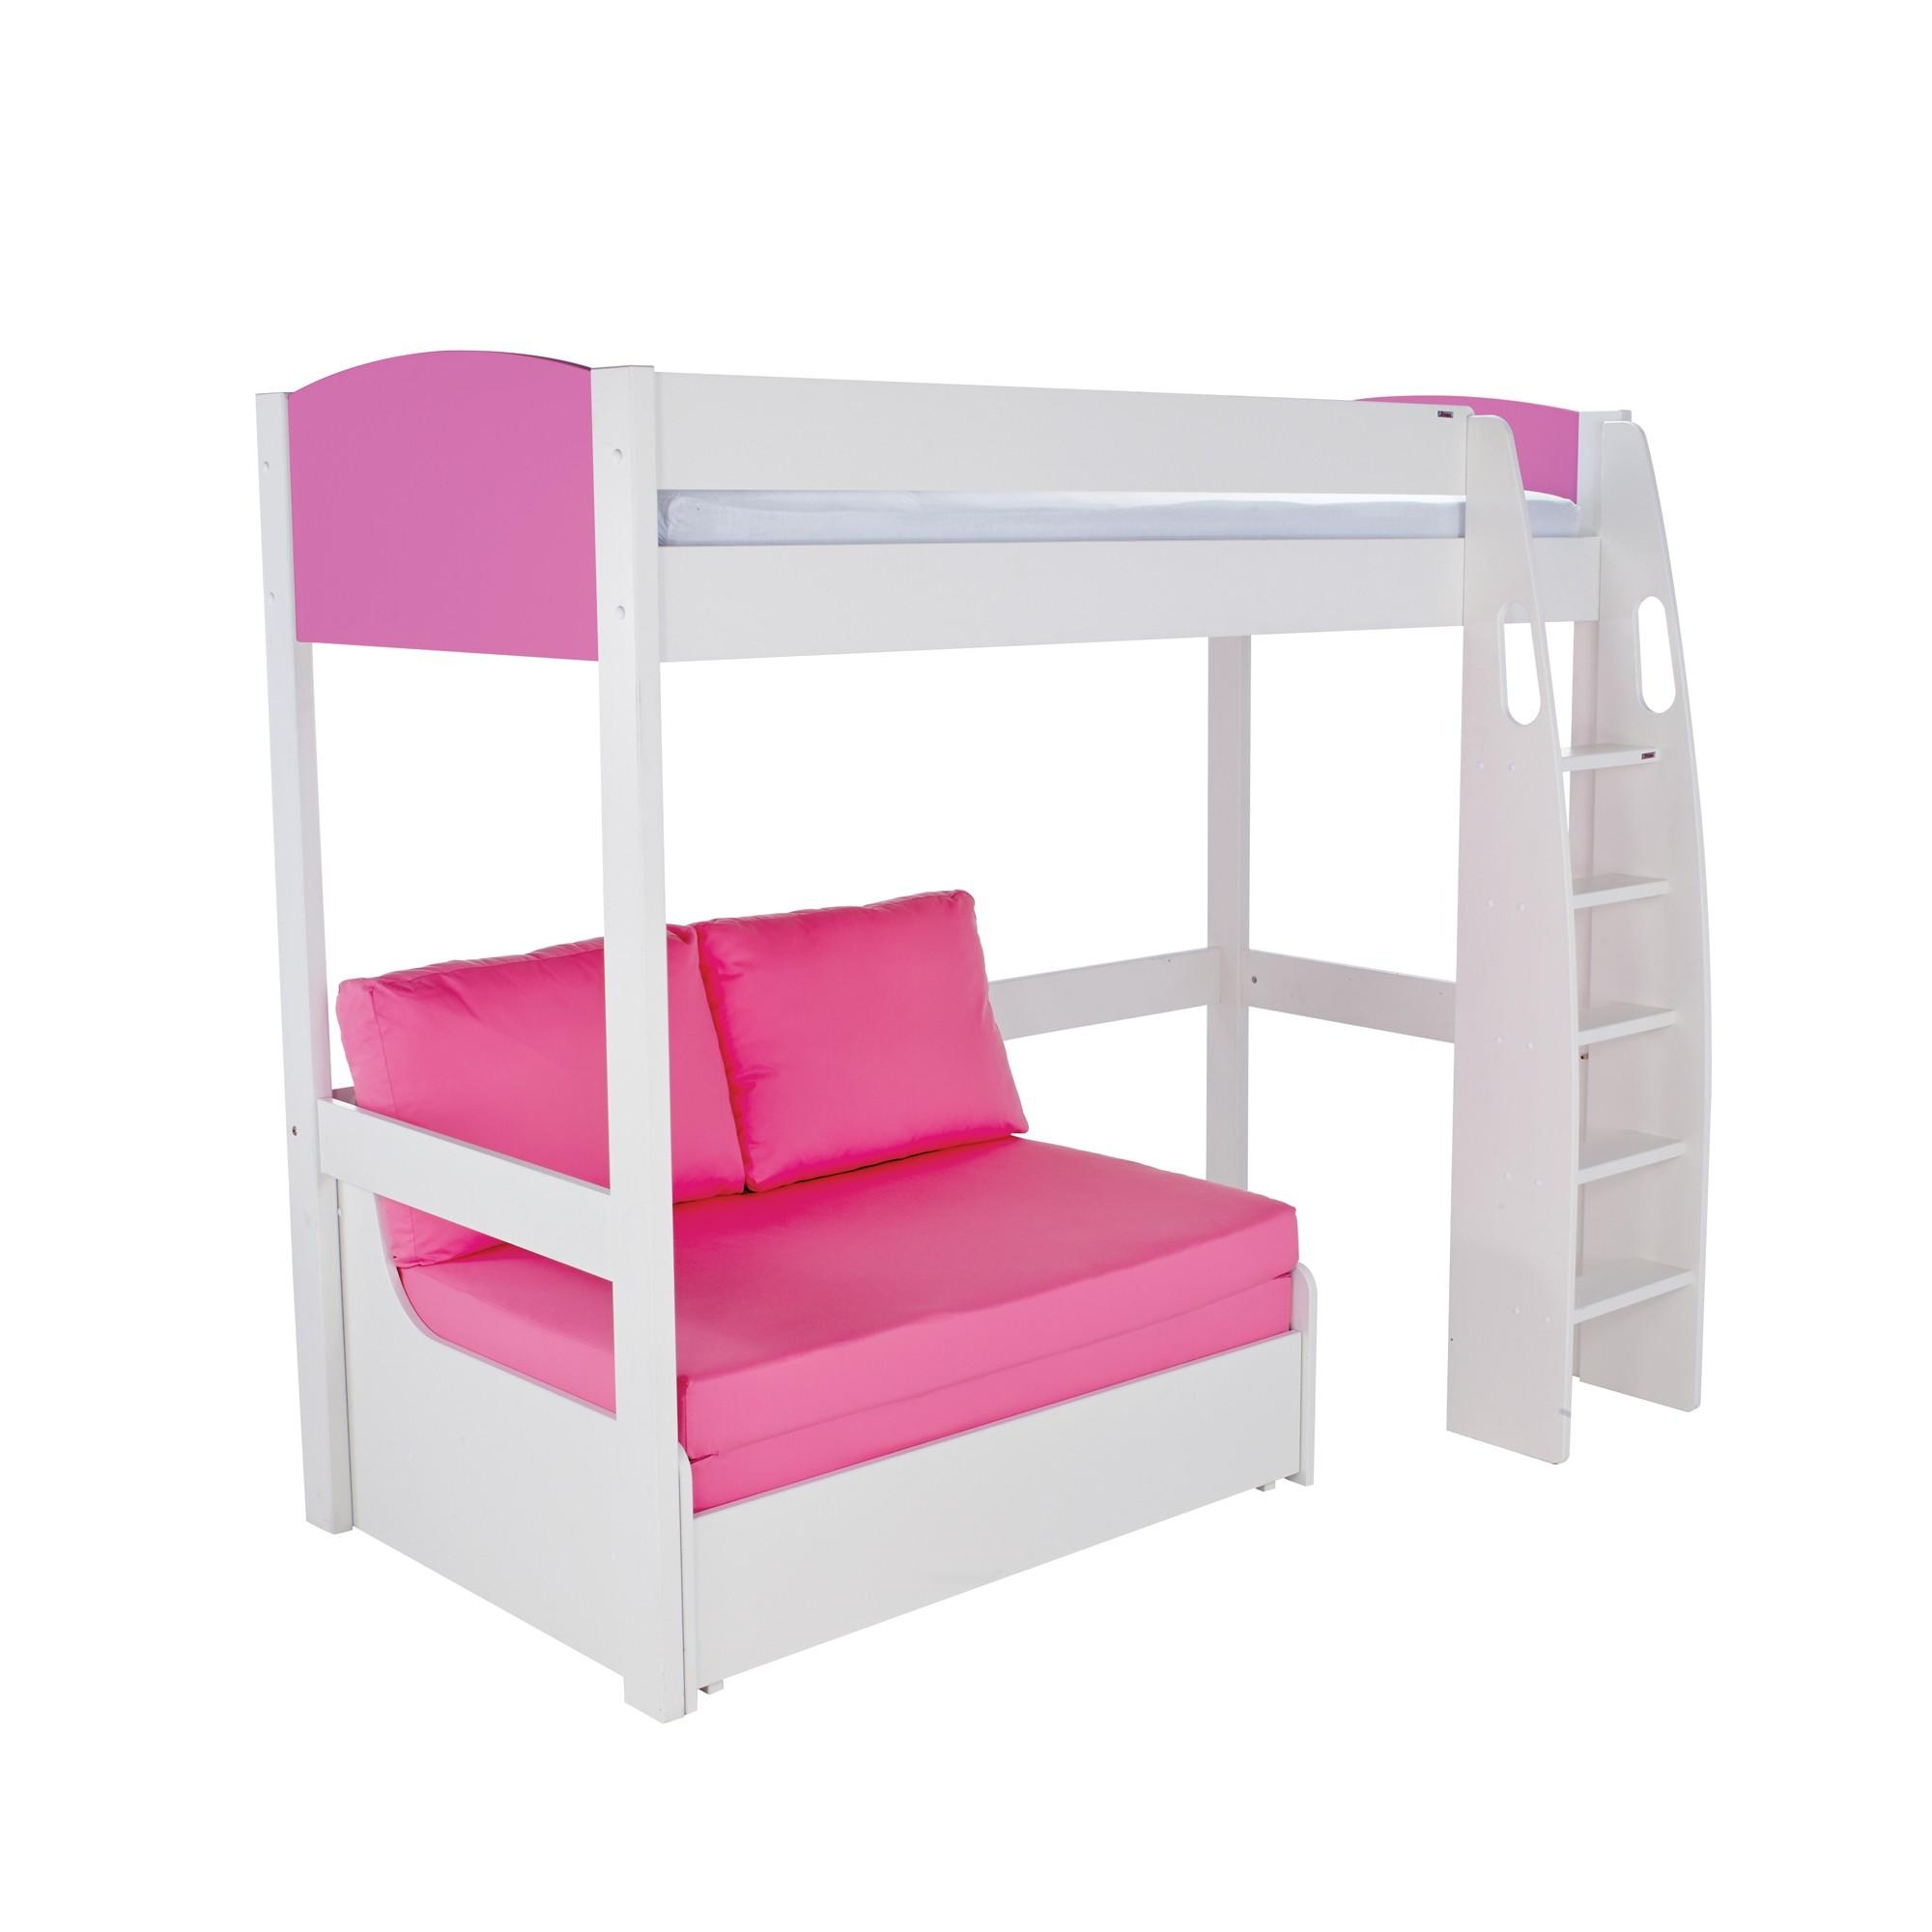 Stompa Duo High Sleeper And Sofa Bed – Highsleeper – Cookes Furniture In High Sleeper Bed With Sofa (Image 13 of 20)